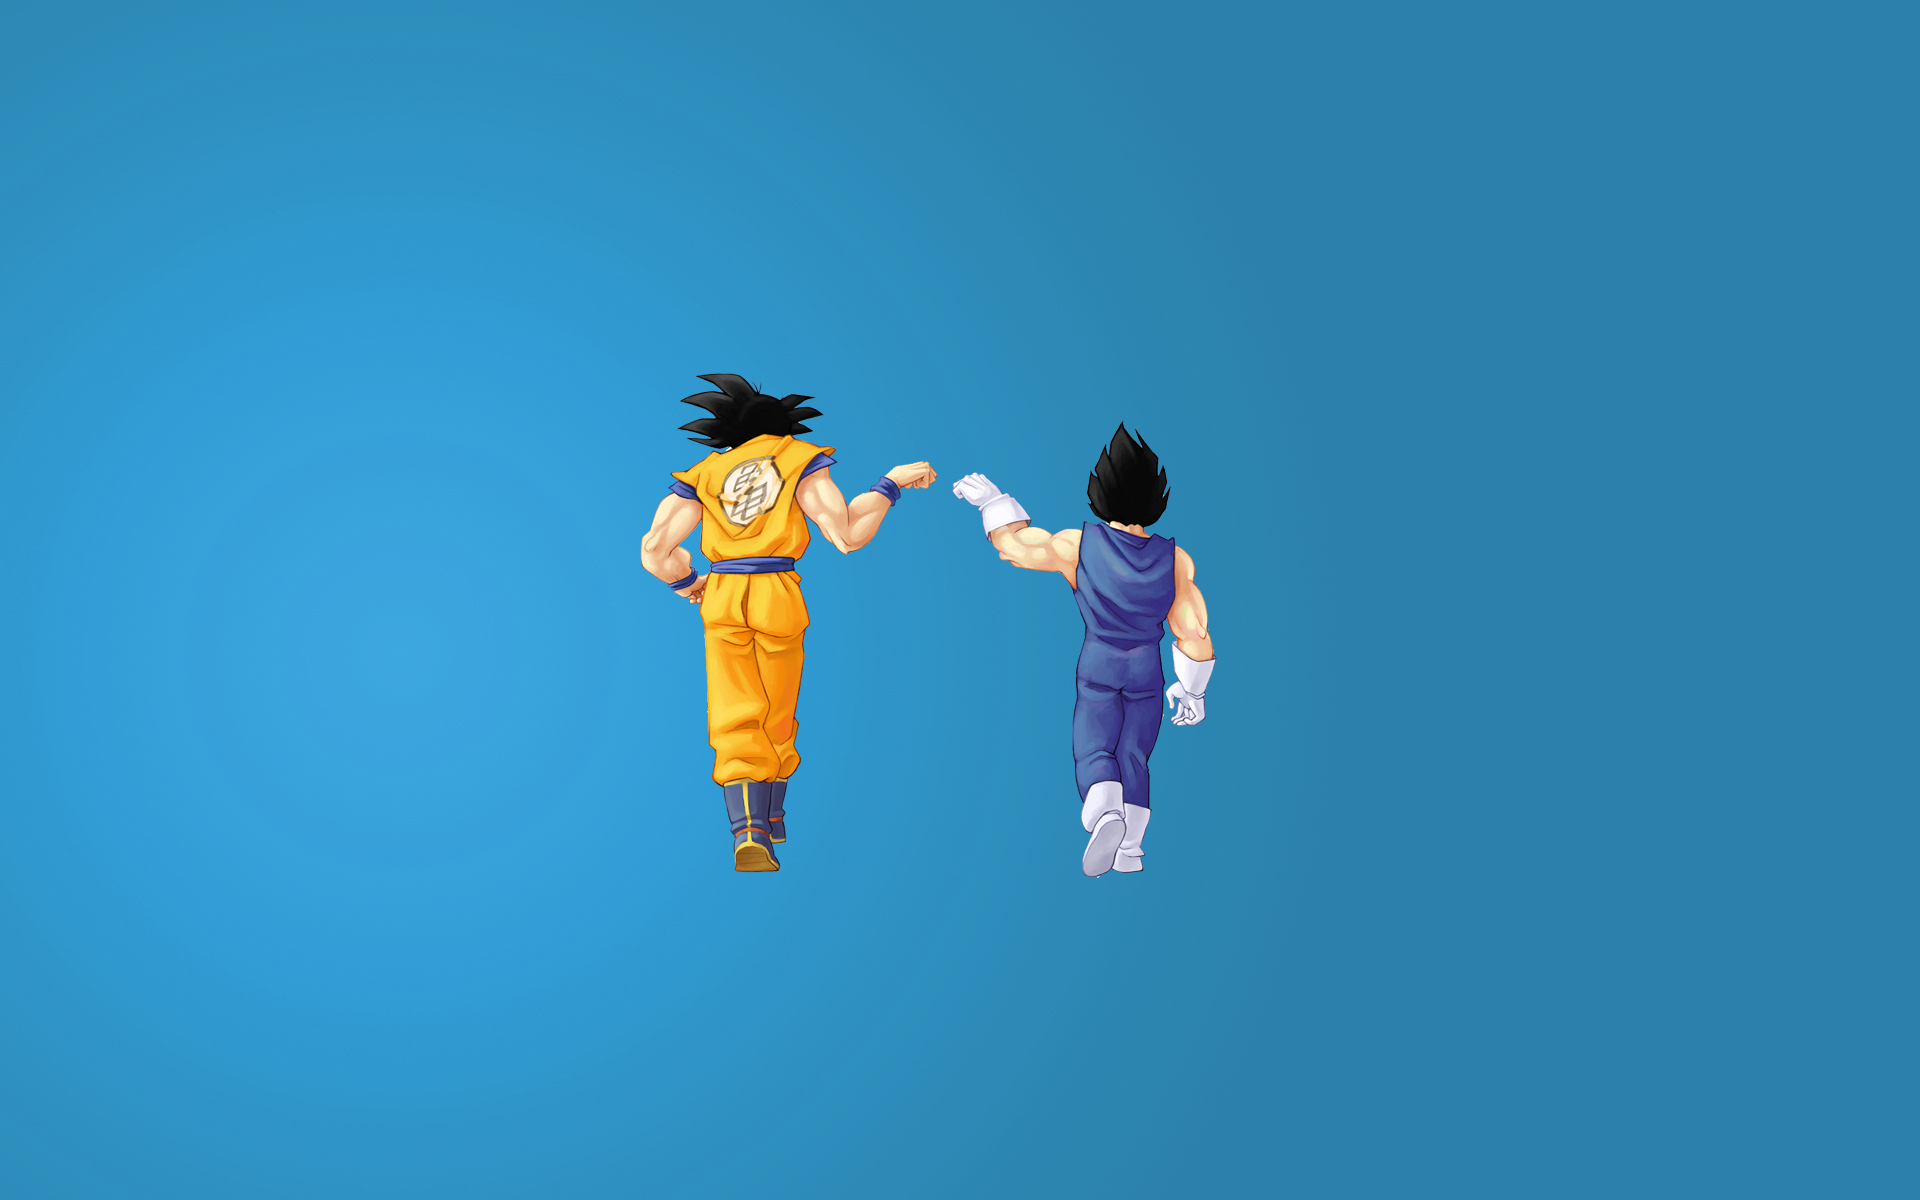 Free Animated Wallpapers For Mobile Phones 40 Best Goku Wallpaper Hd For Pc Dragon Ball Z